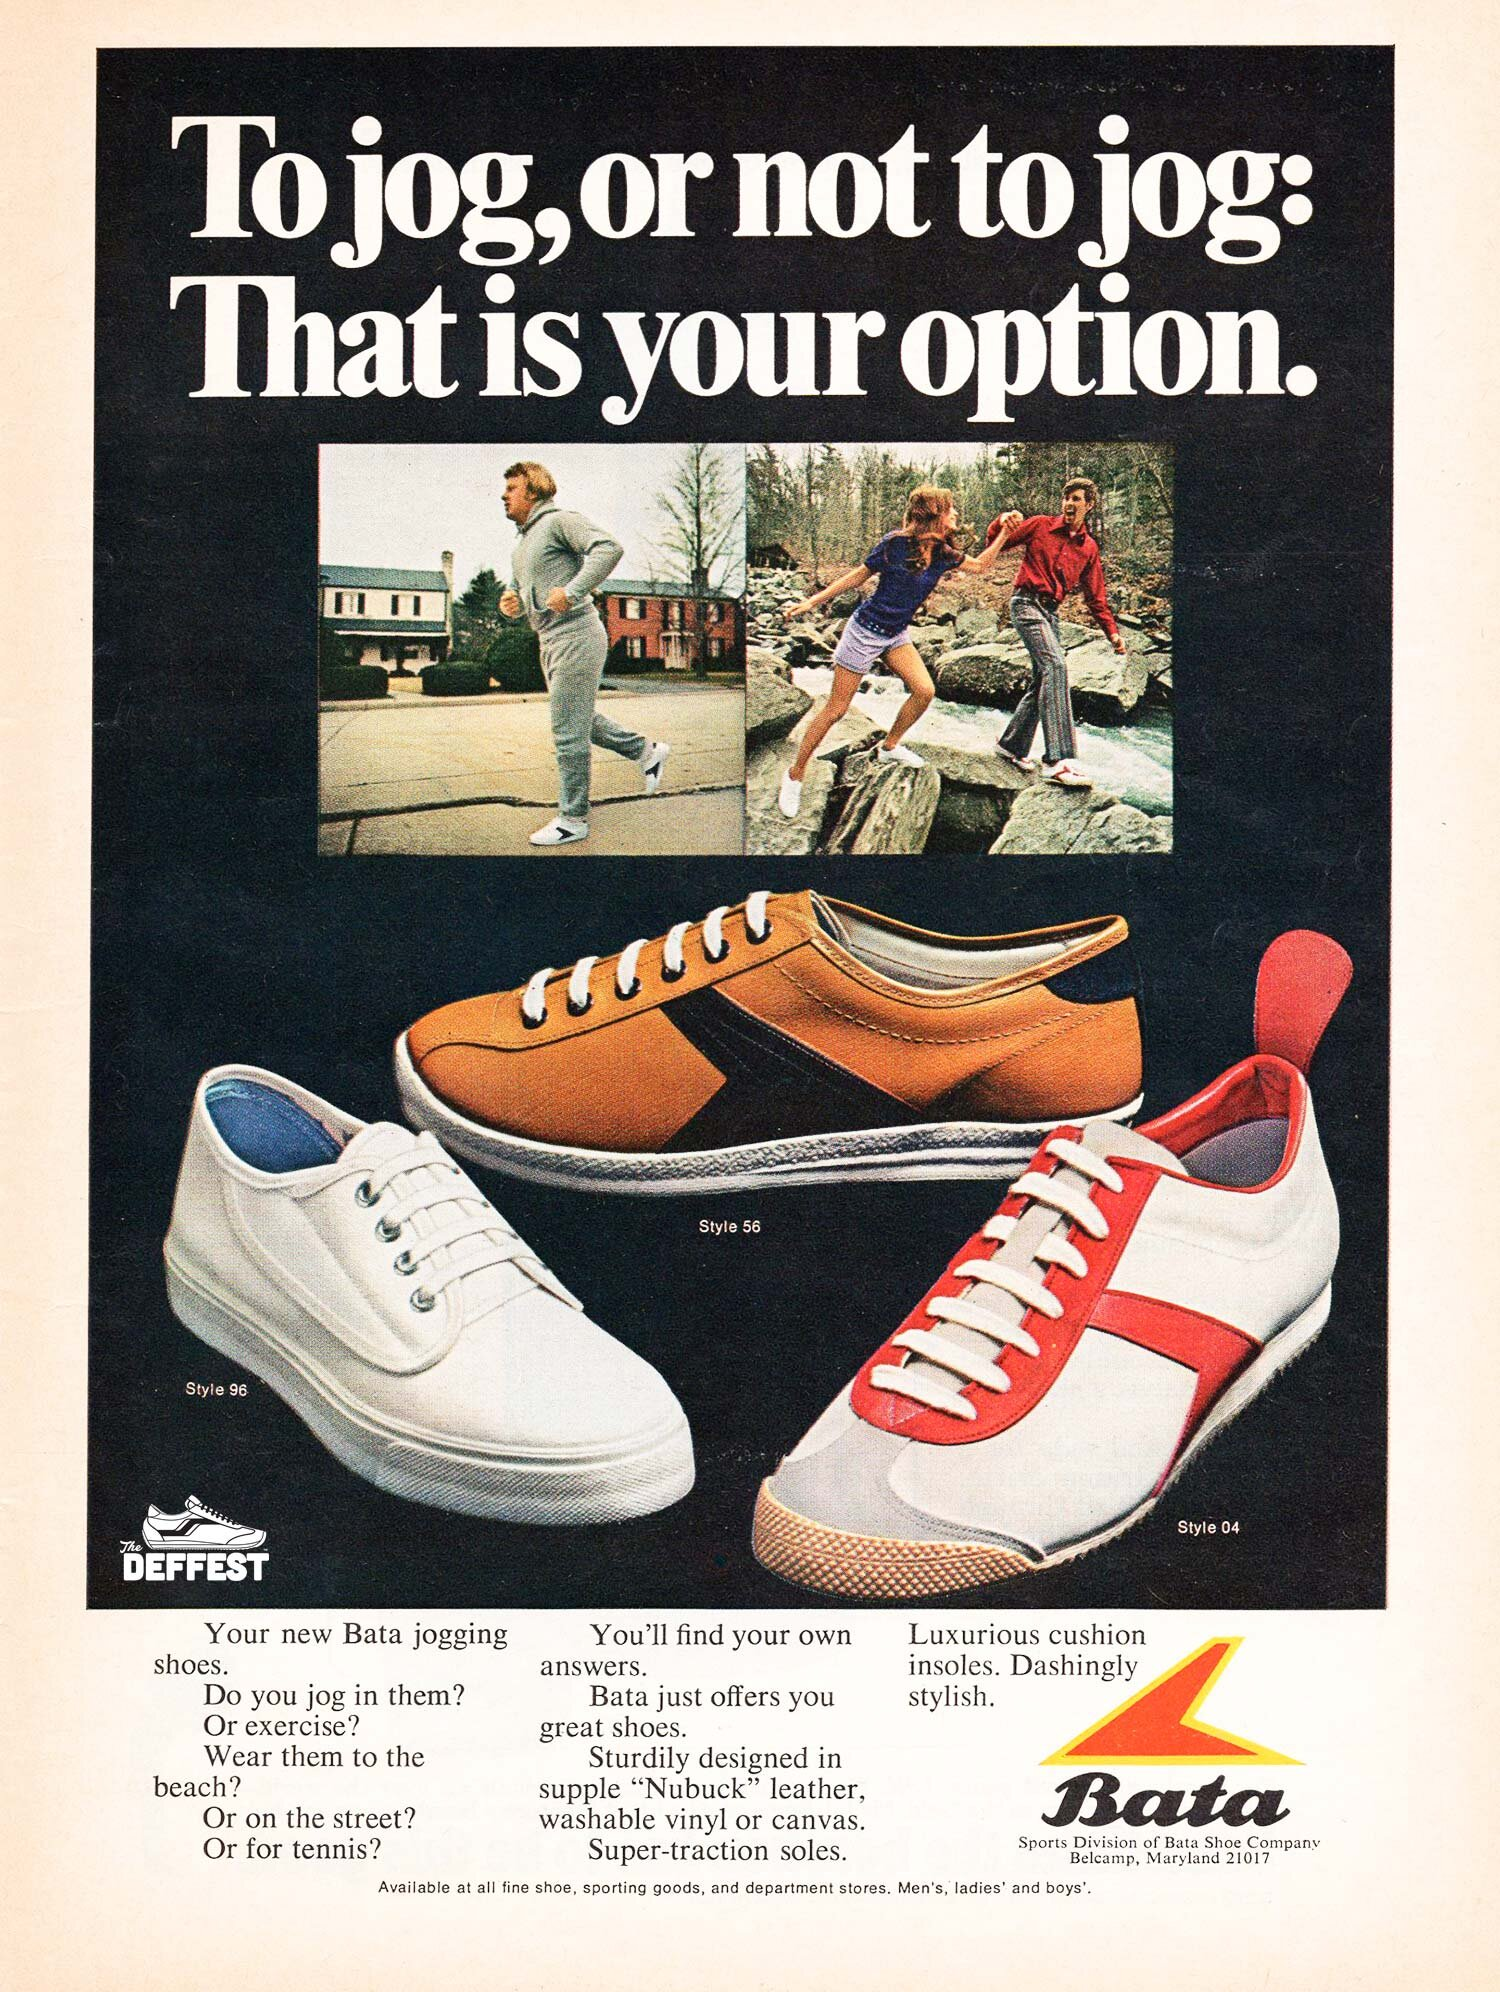 1970s Shoes The Deffest A Vintage And Retro Sneaker Blog Vintage Ads